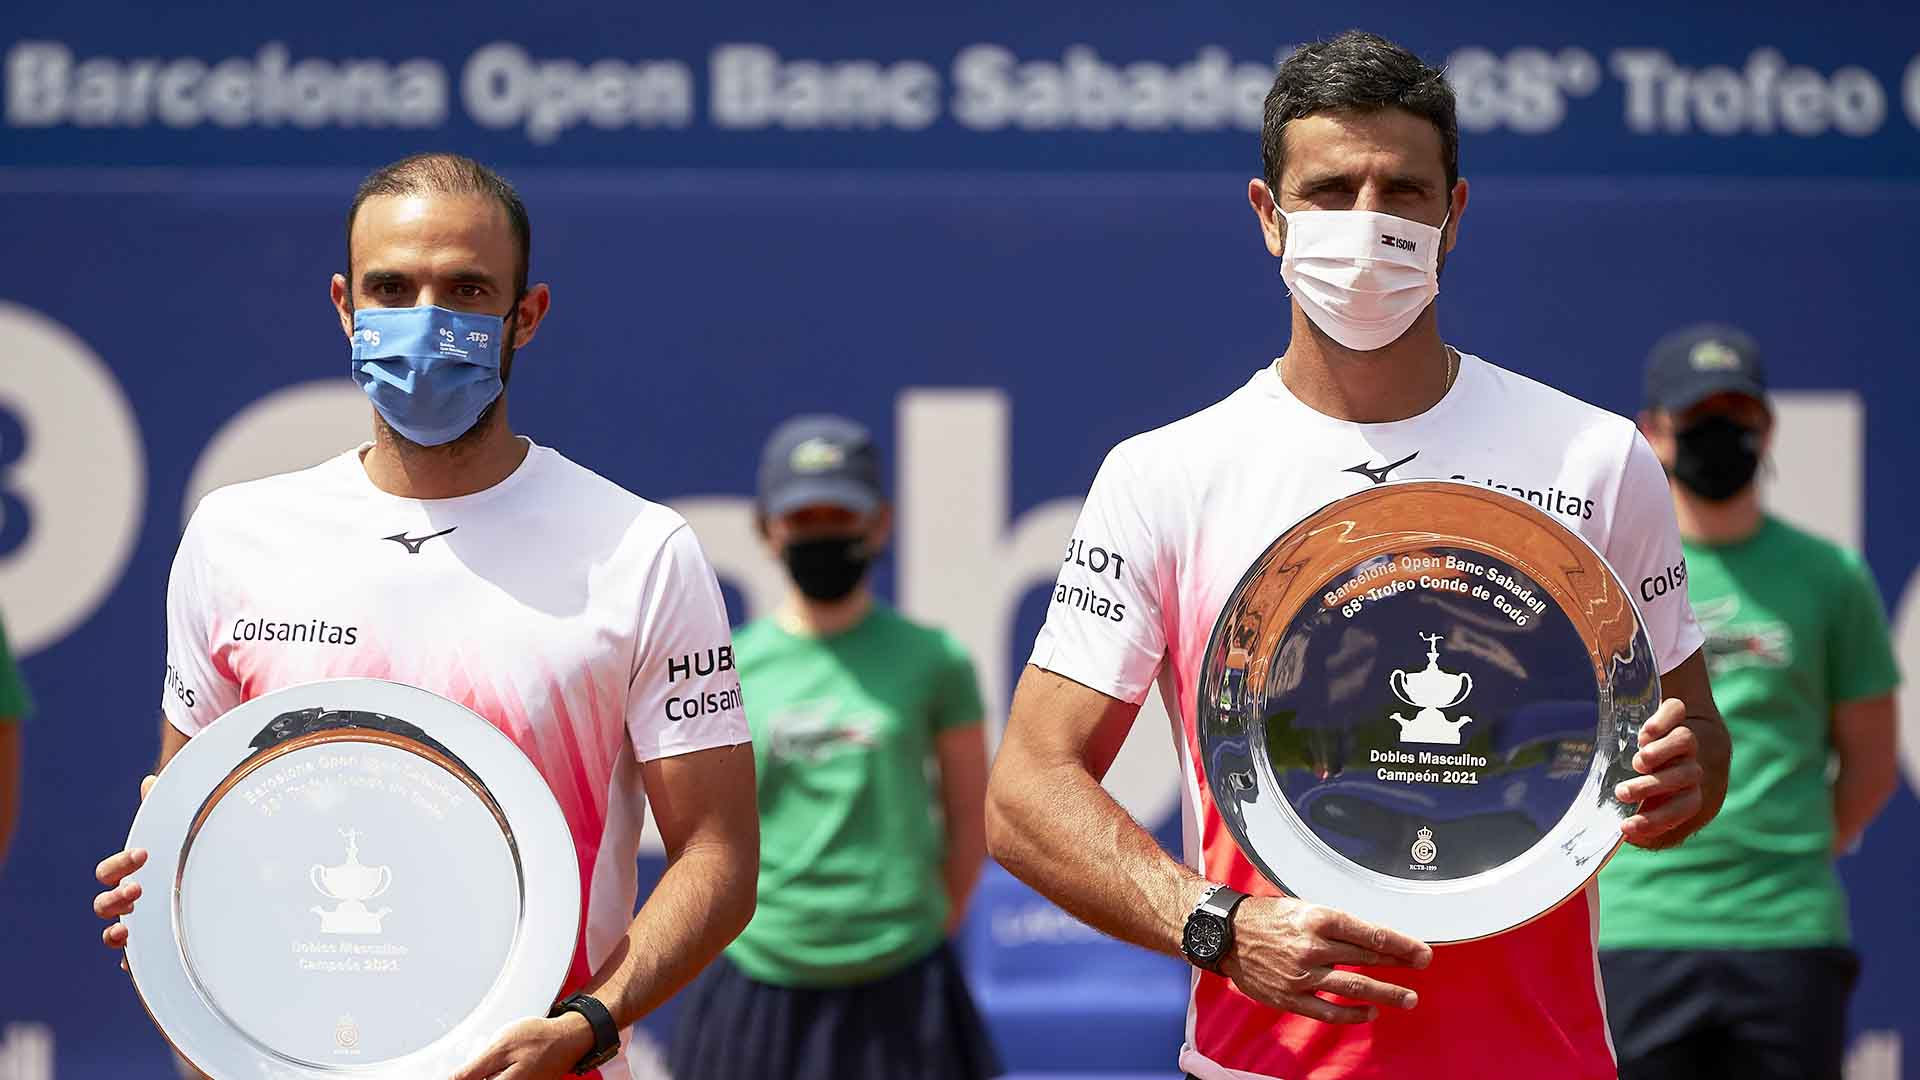 <a href='https://www.atptour.com/en/players/juan-sebastian-cabal/c834/overview'>Juan Sebastian Cabal</a> and <a href='https://www.atptour.com/en/players/robert-farah/f525/overview'>Robert Farah</a> capture their second title of the year at the <a href='https://www.atptour.com/en/tournaments/barcelona/425/overview'>Barcelona Open Banc Sabadell</a>.